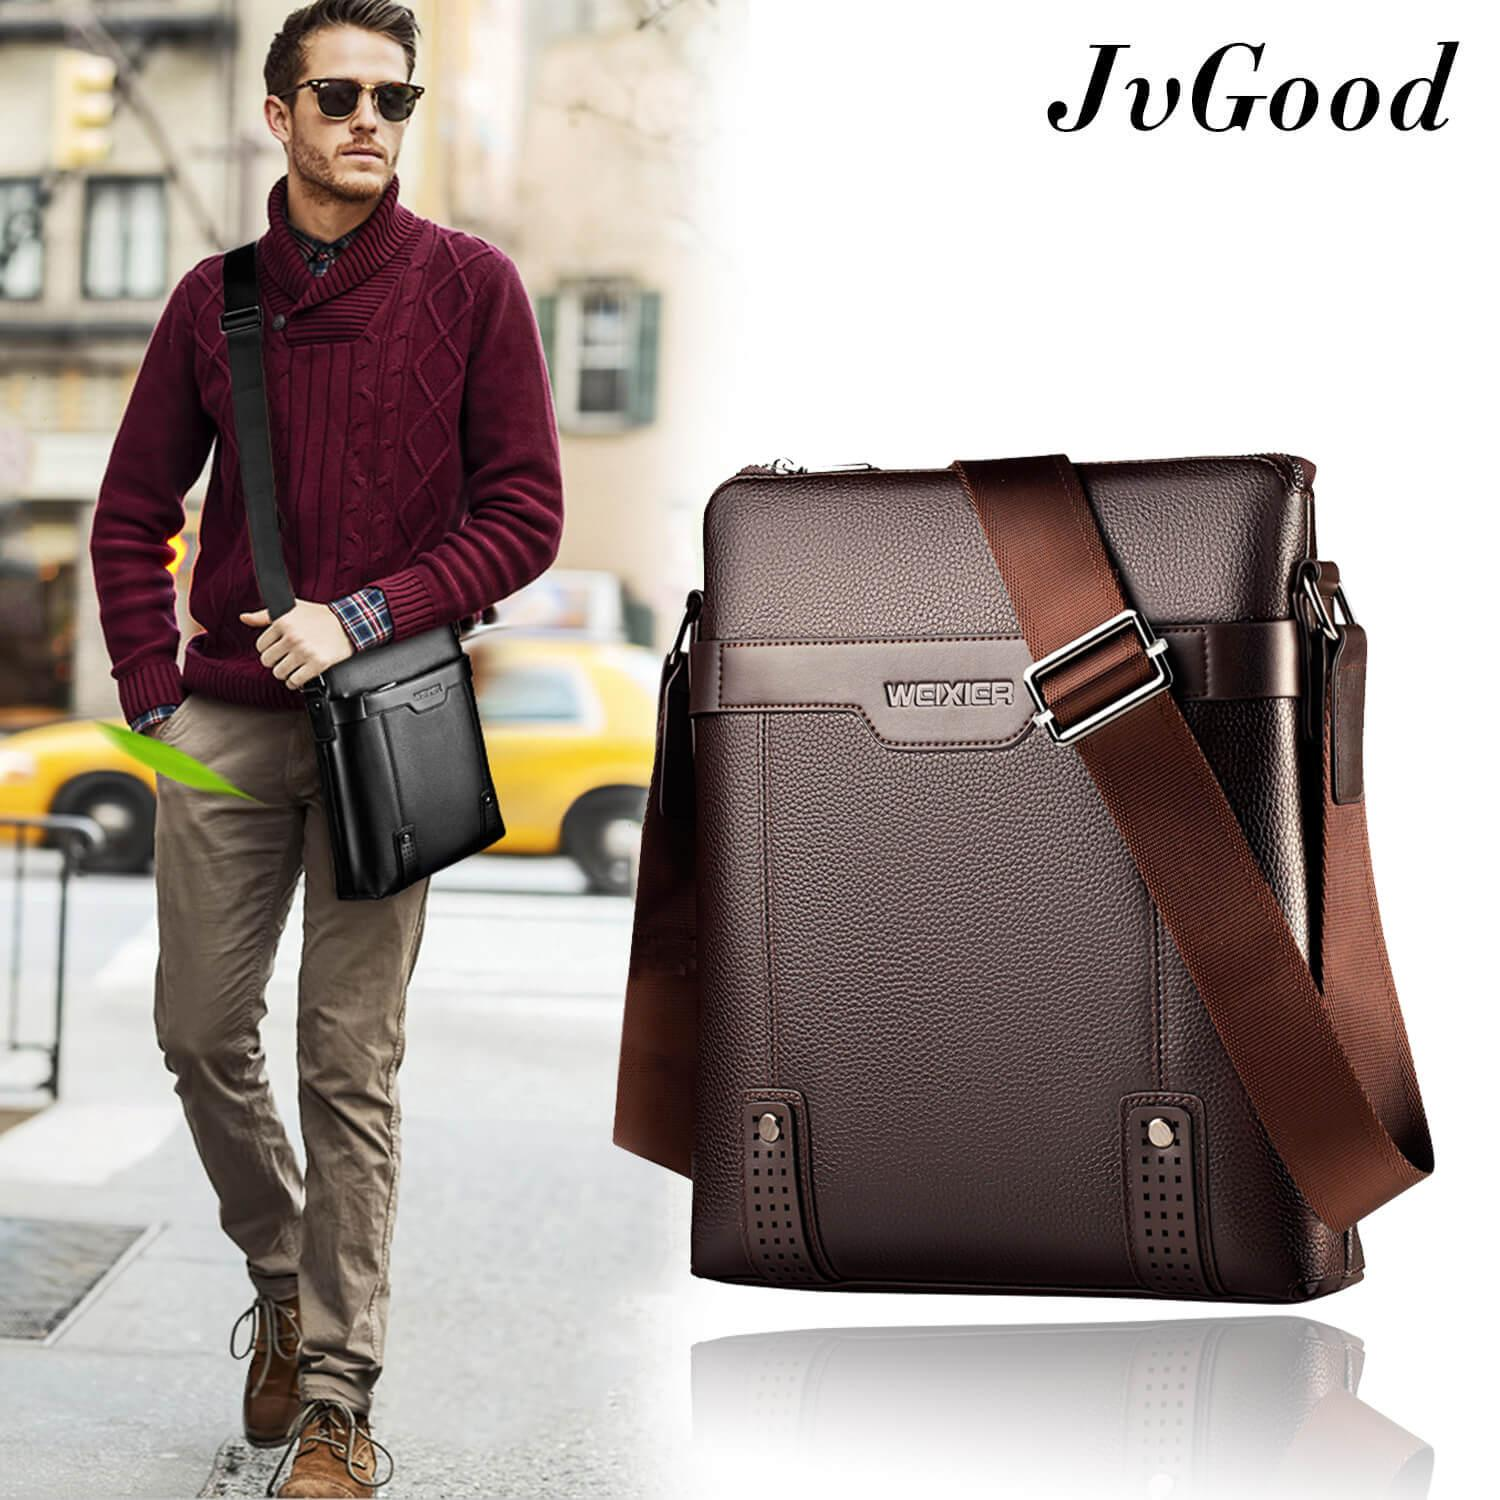 Jvgood Messenger Bags Pu Leather Men Bag Sling Shoulder Crossbody Casual Business Fashion